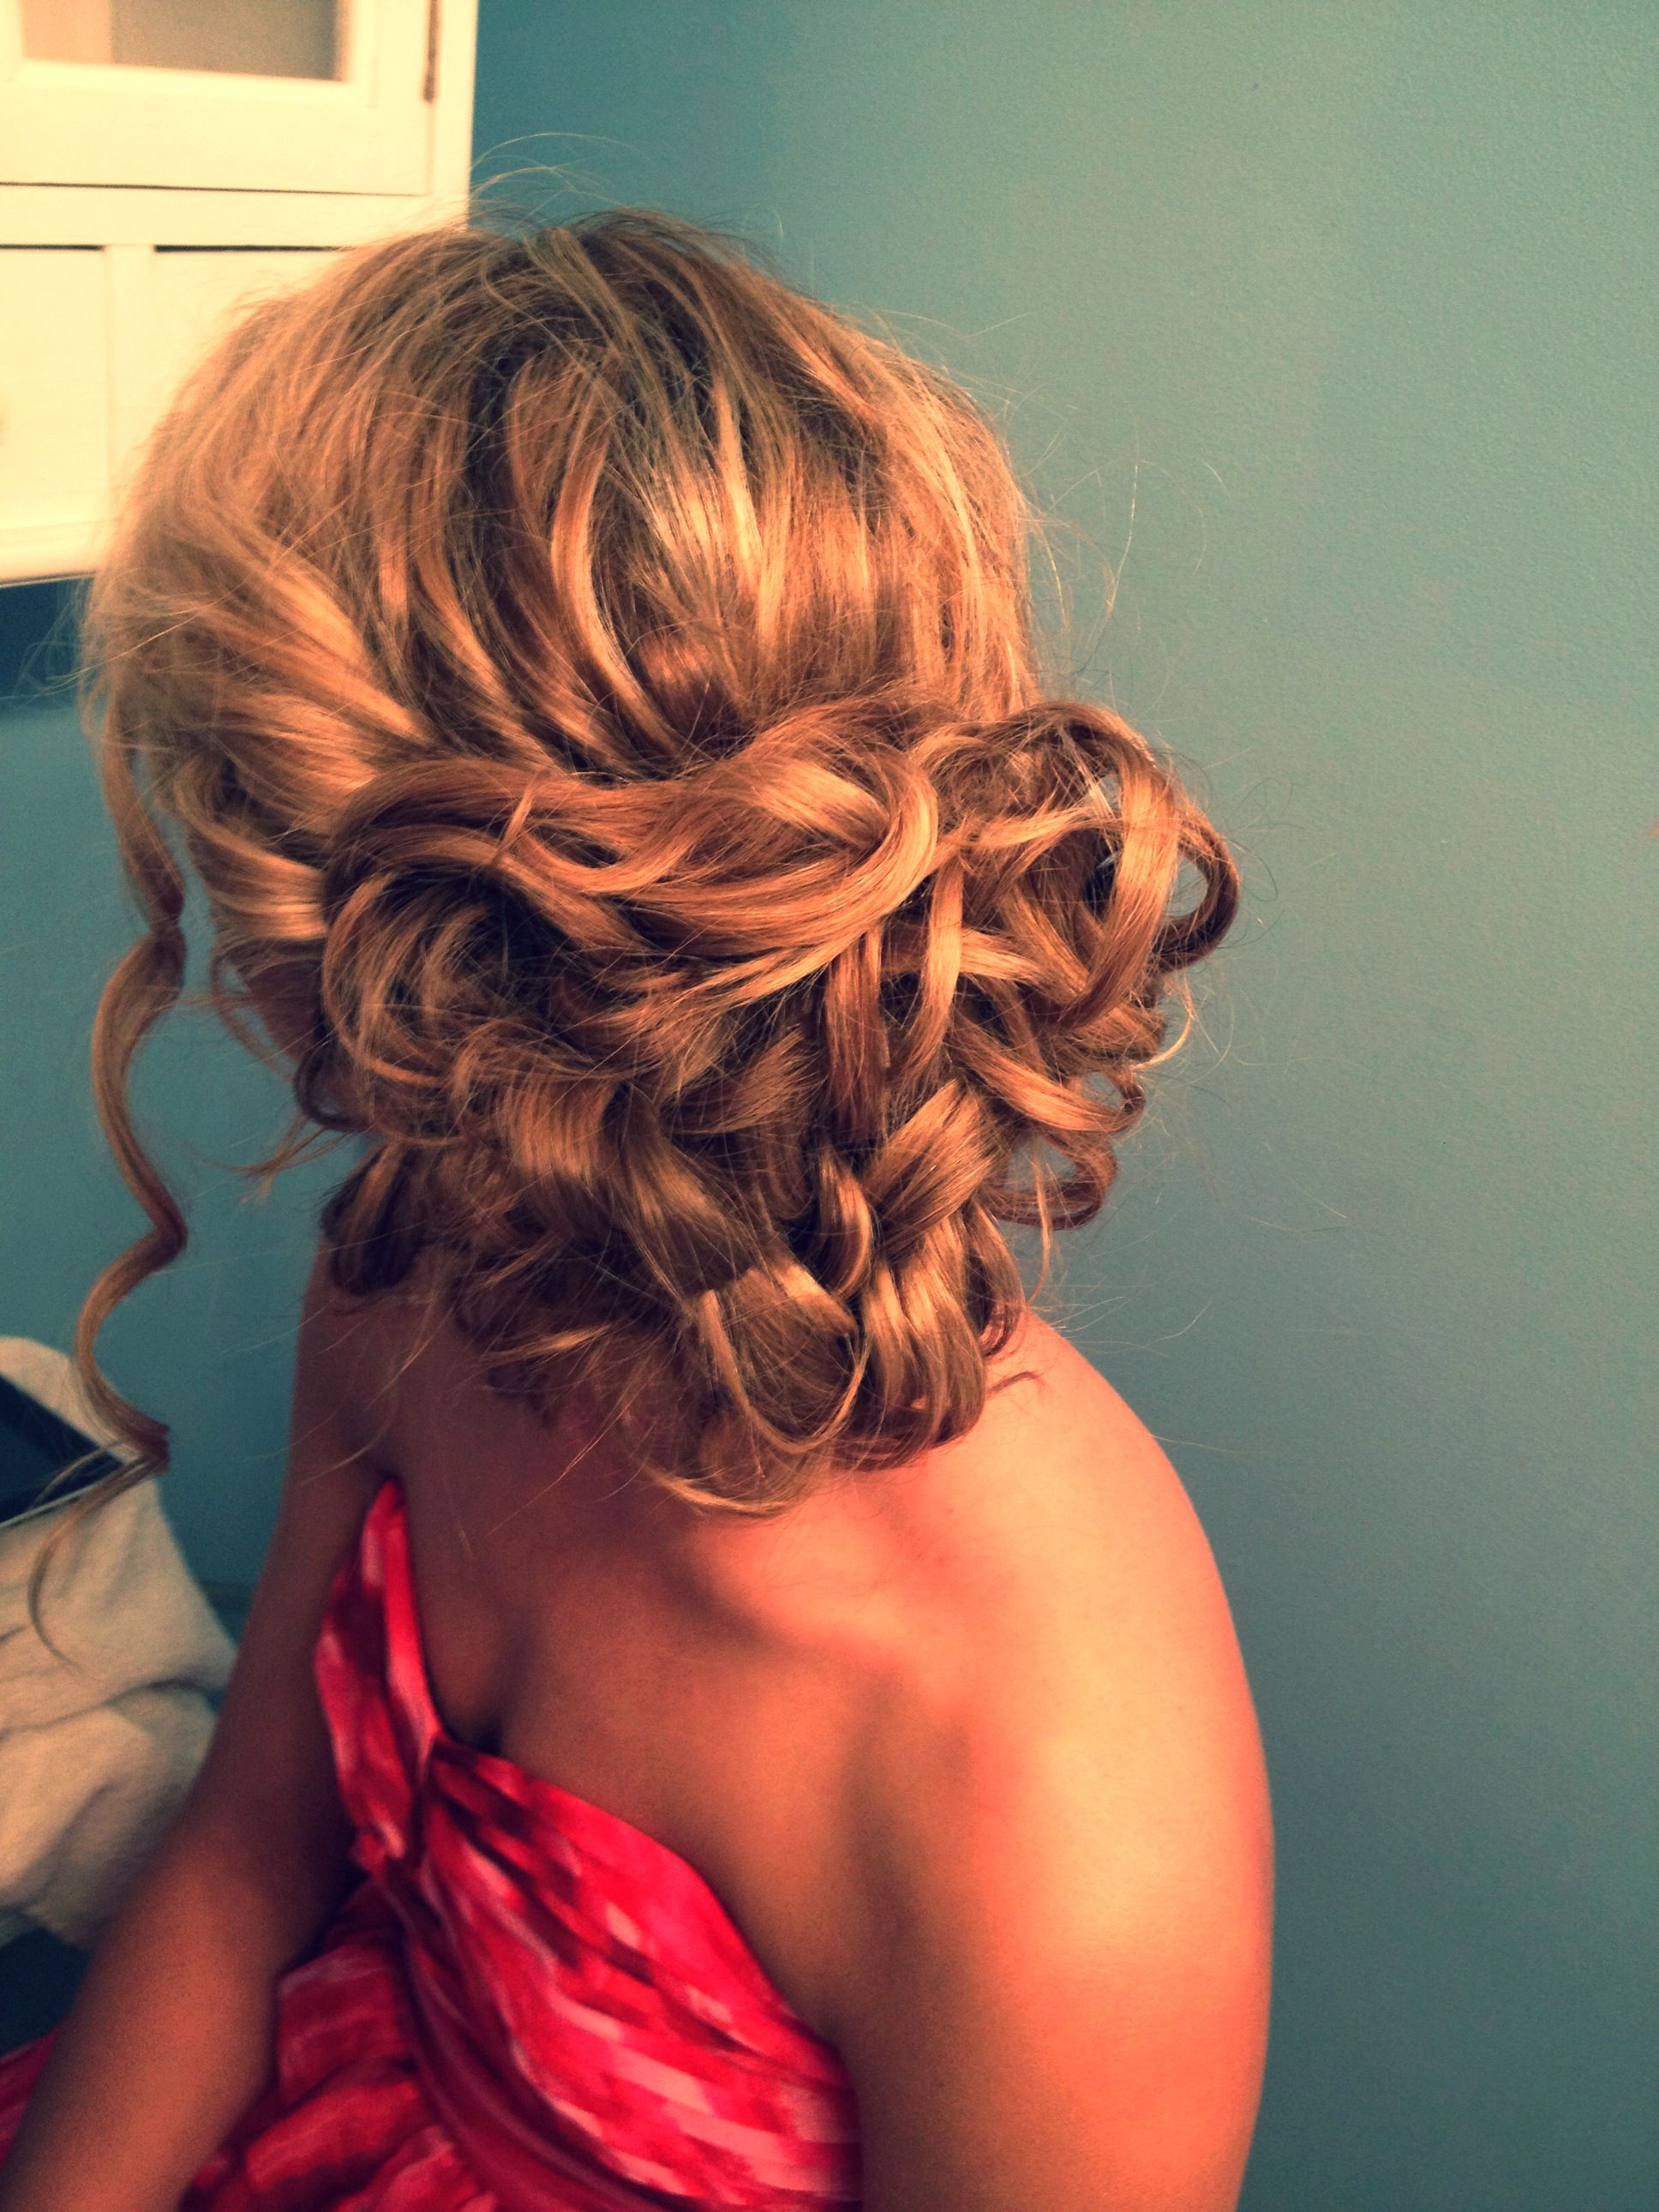 curly hair updo #formal #prom #hair